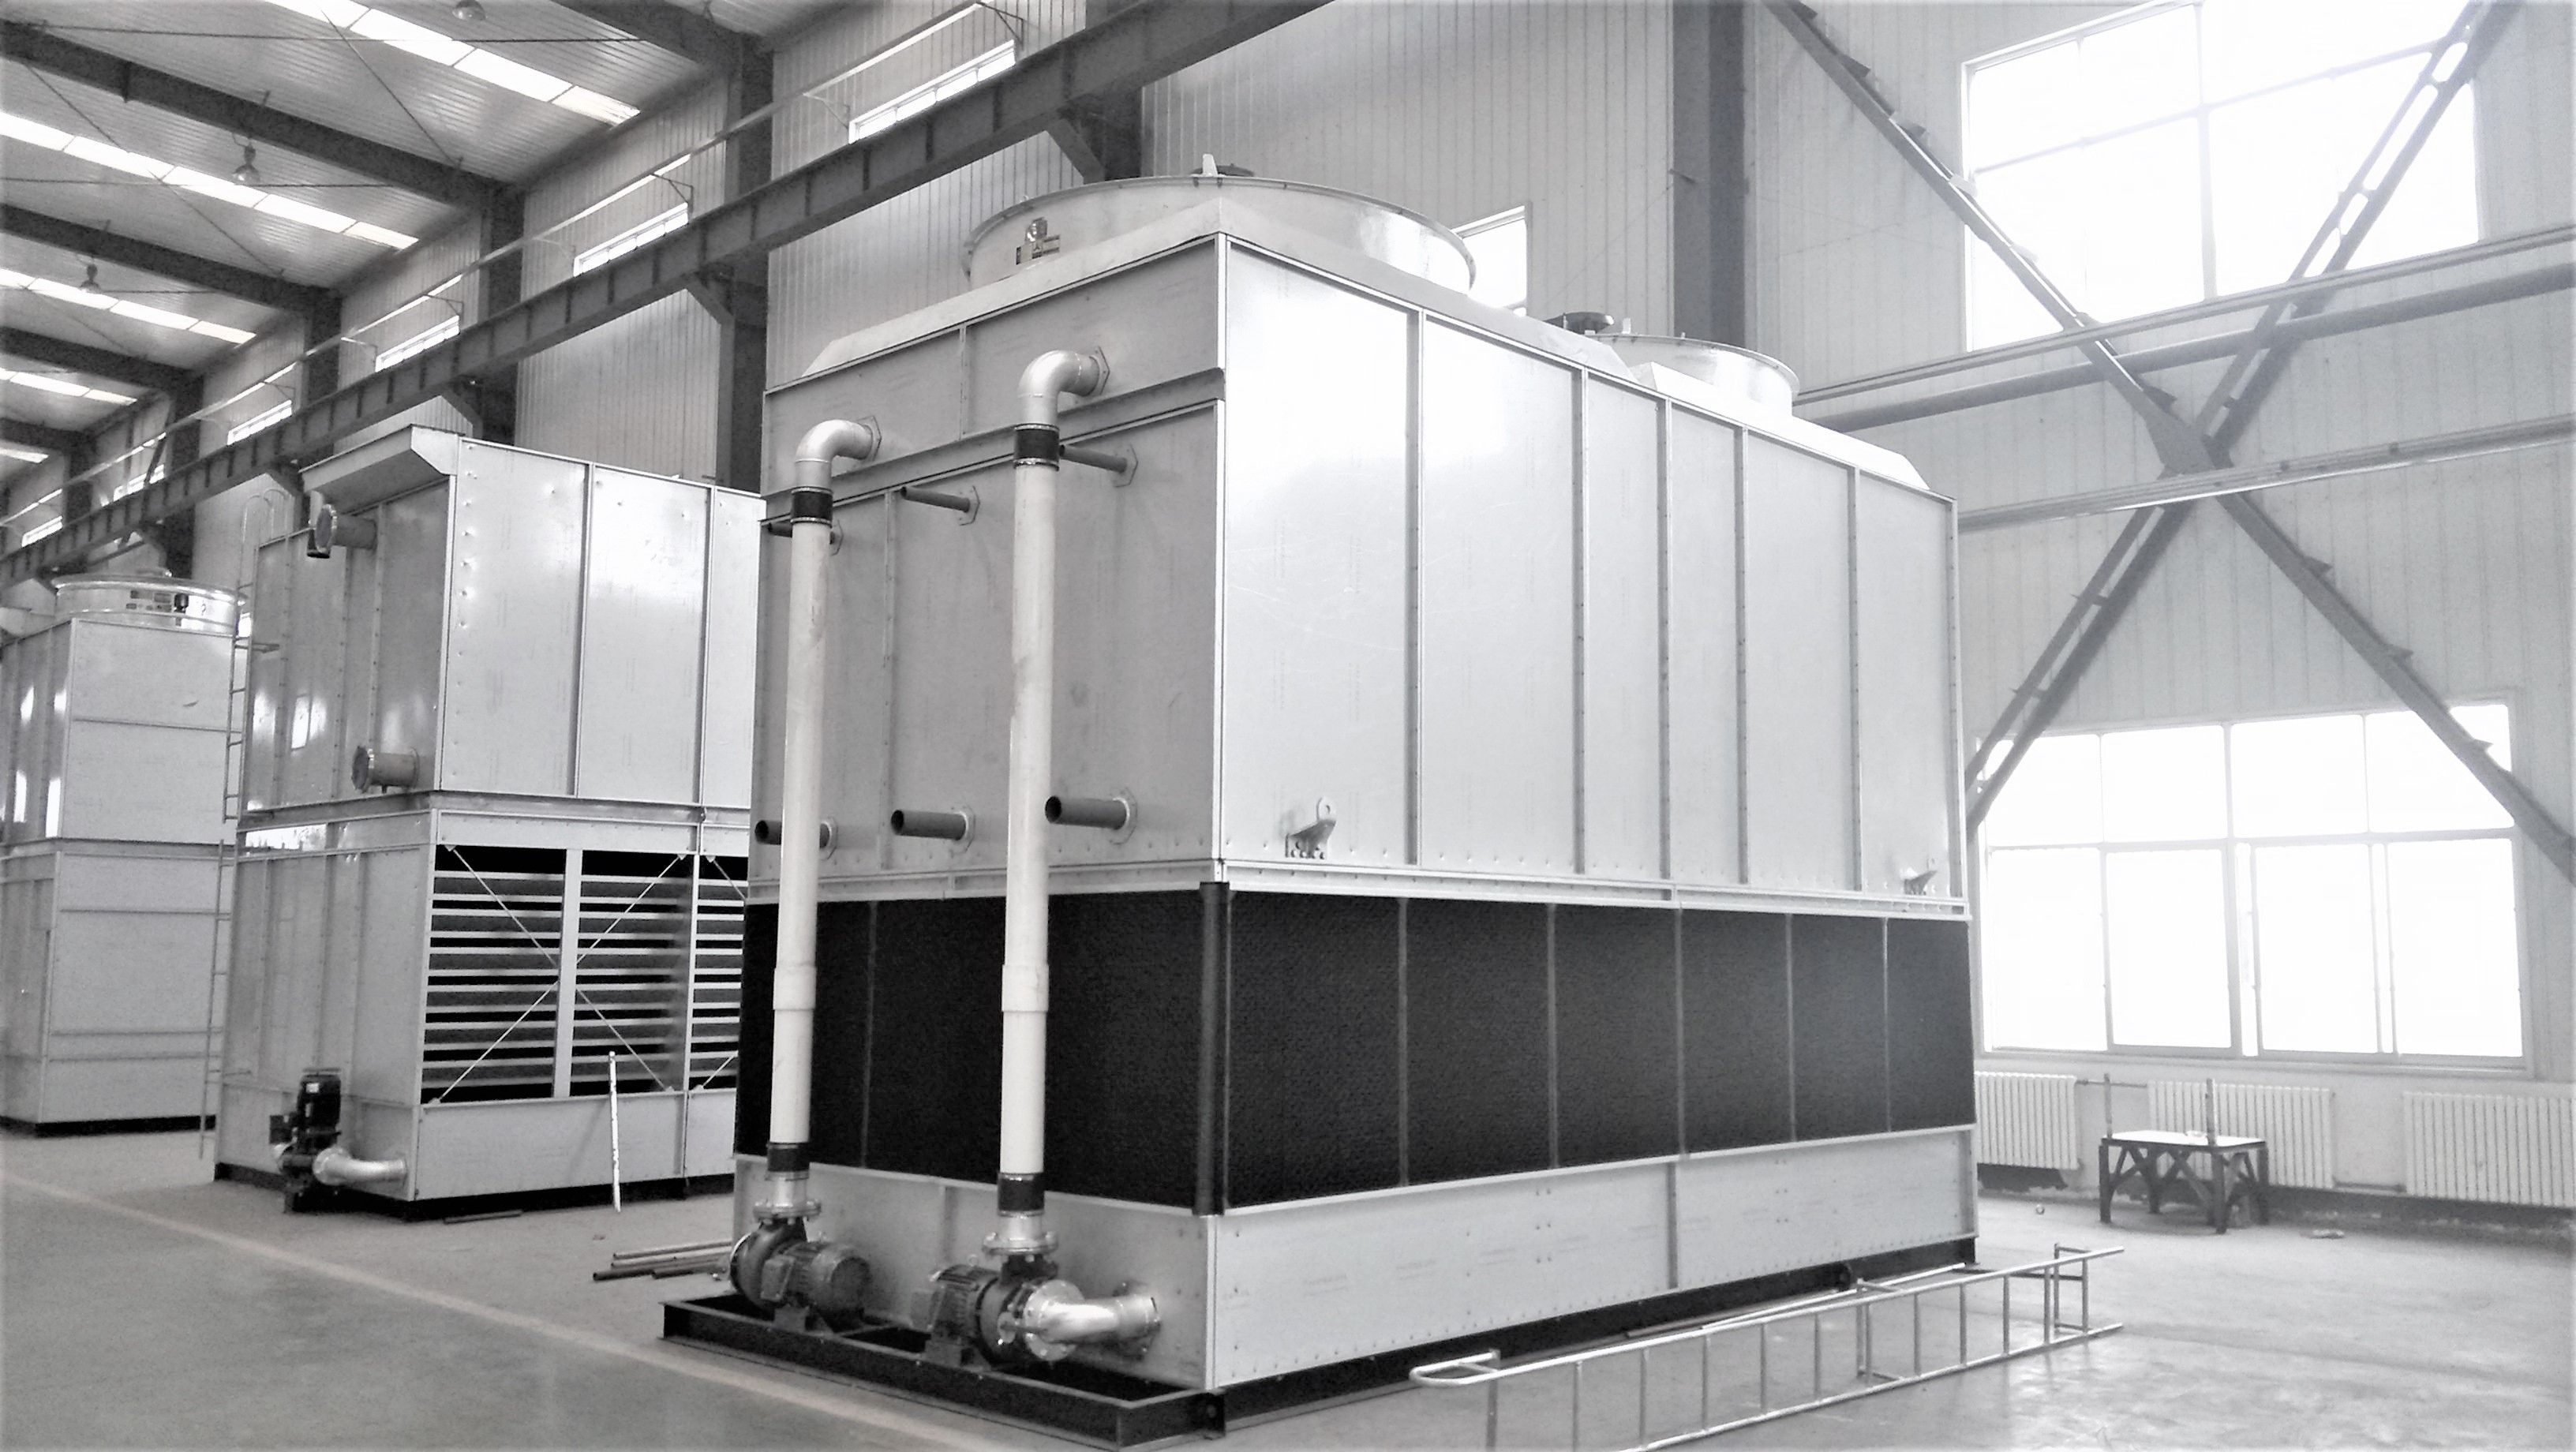 Counter flow CoolingTower, compact structure, less